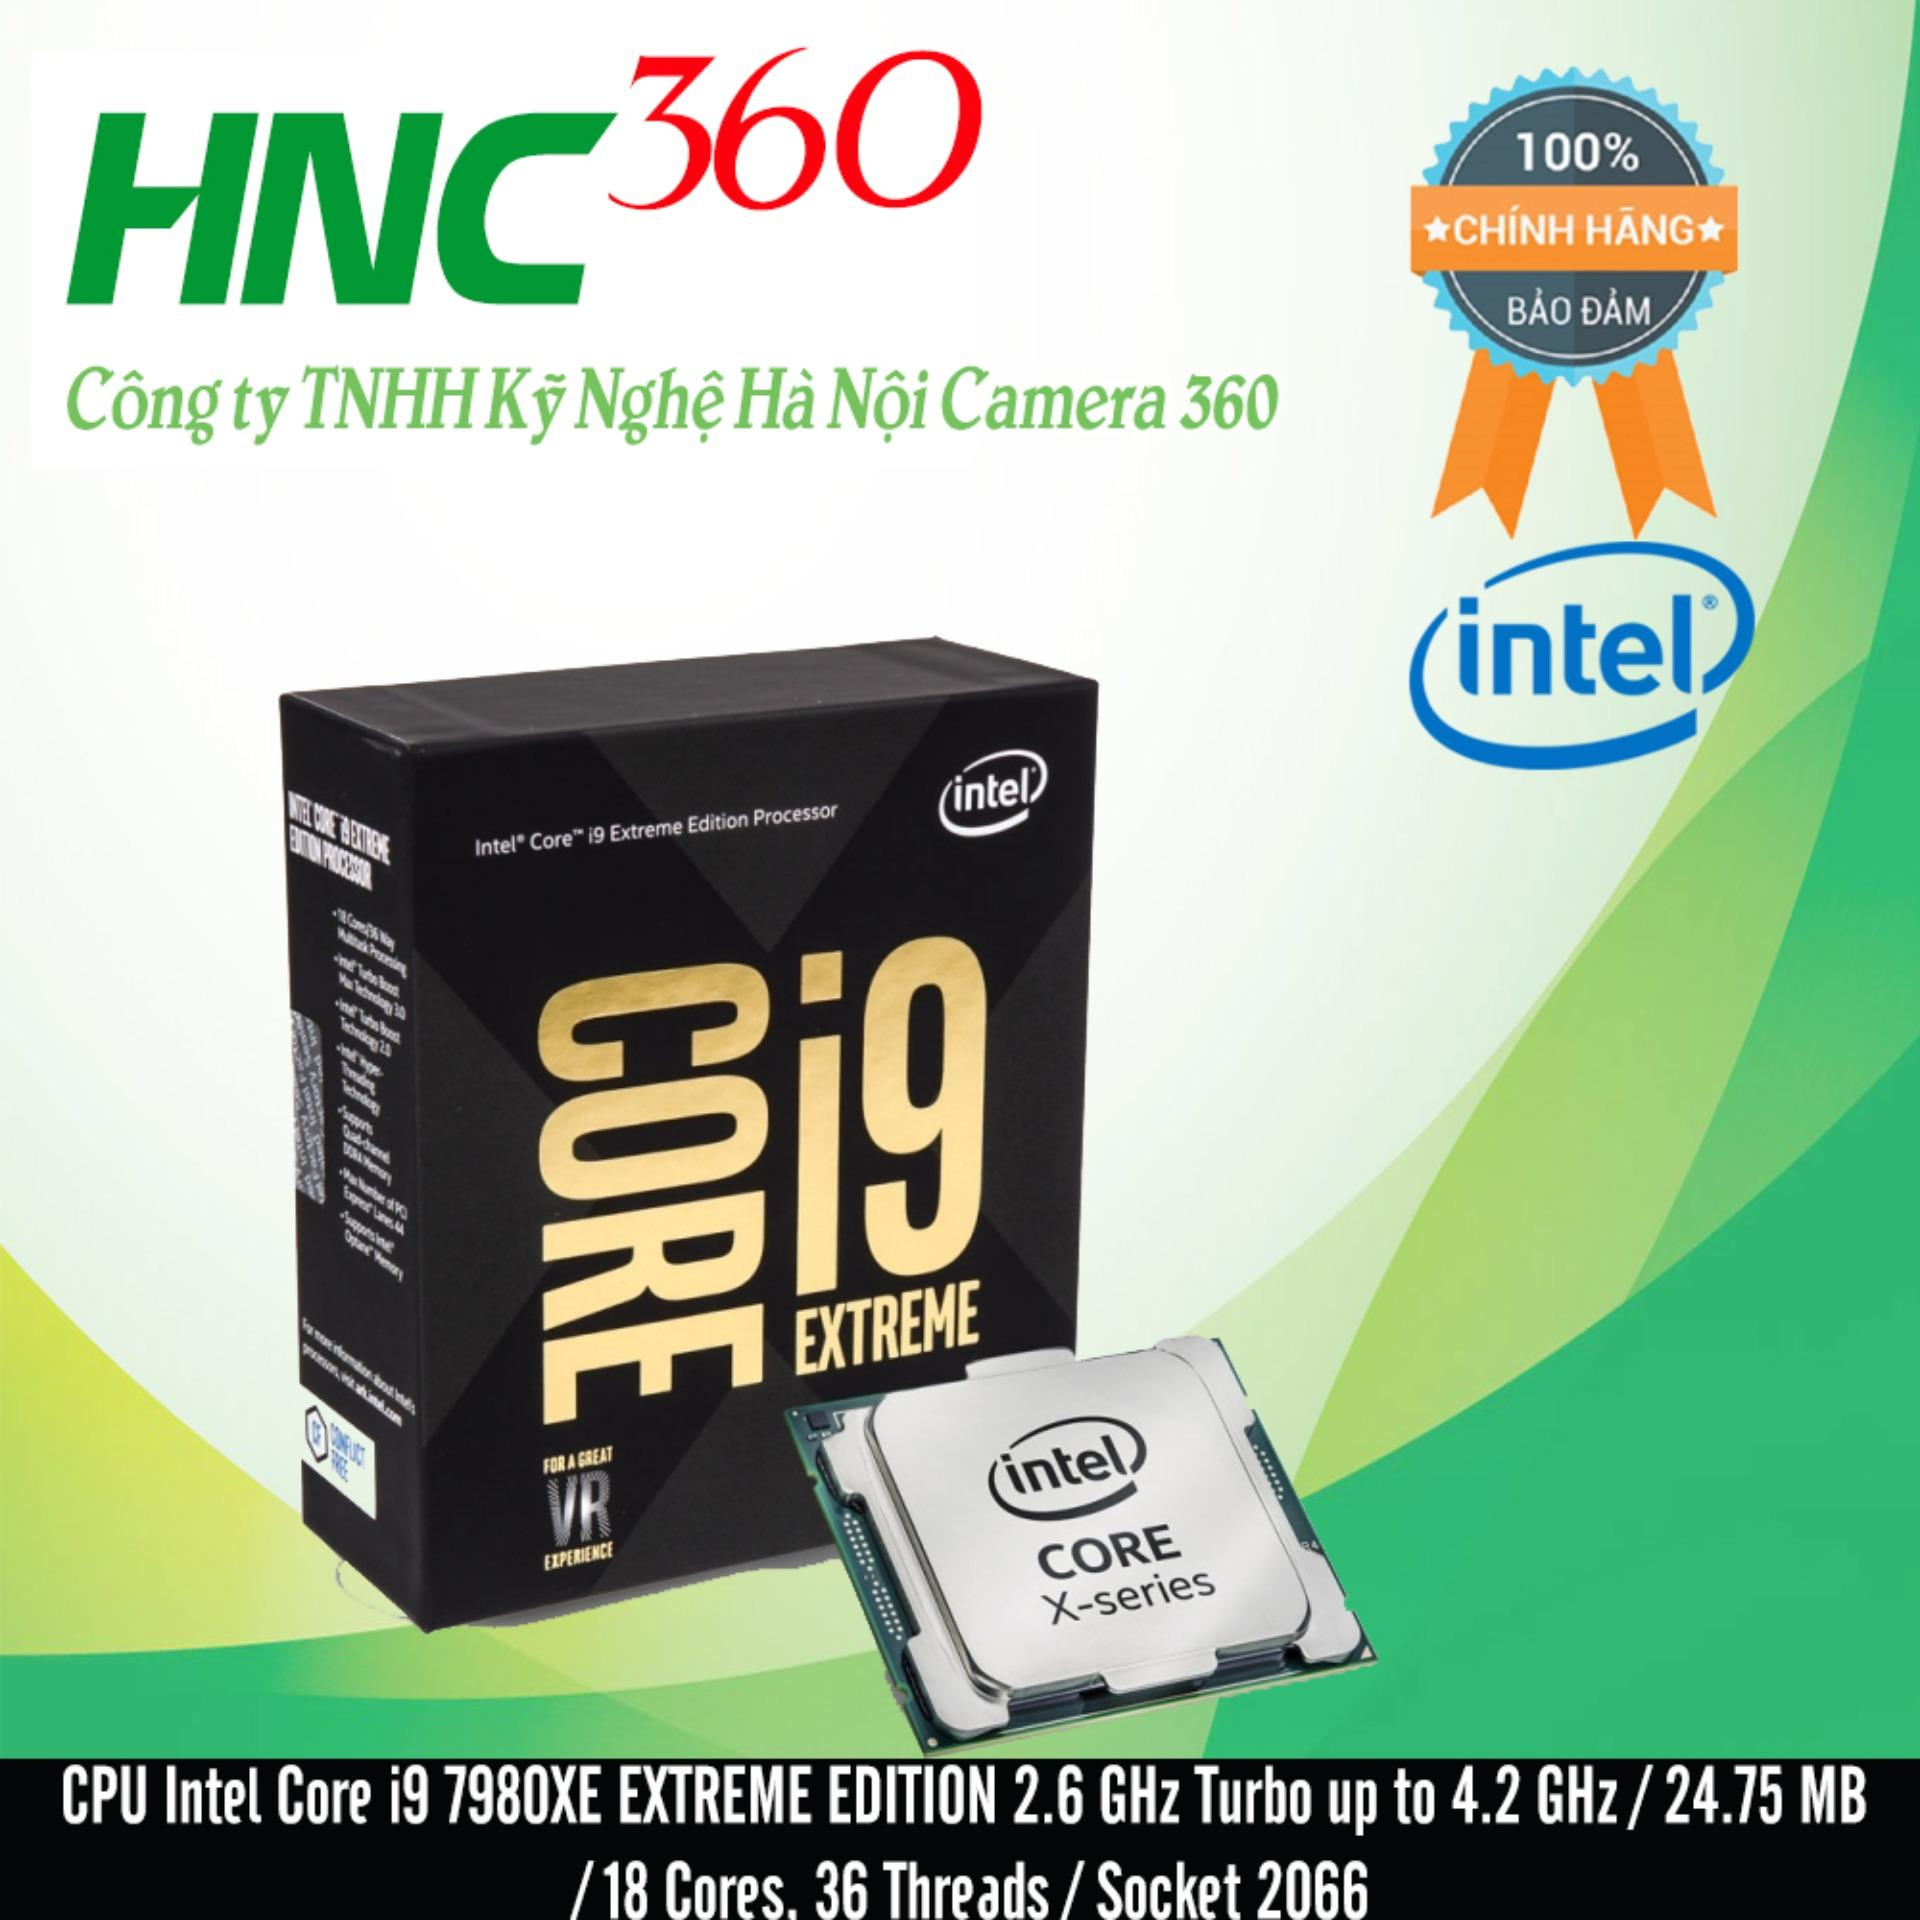 Hình ảnh CPU Intel Core i9 7980XE EXTREME EDITION 2.6 GHz Turbo up to 4.2 GHz / 24.75 MB / 18 Cores, 36 Threads / Socket 2066